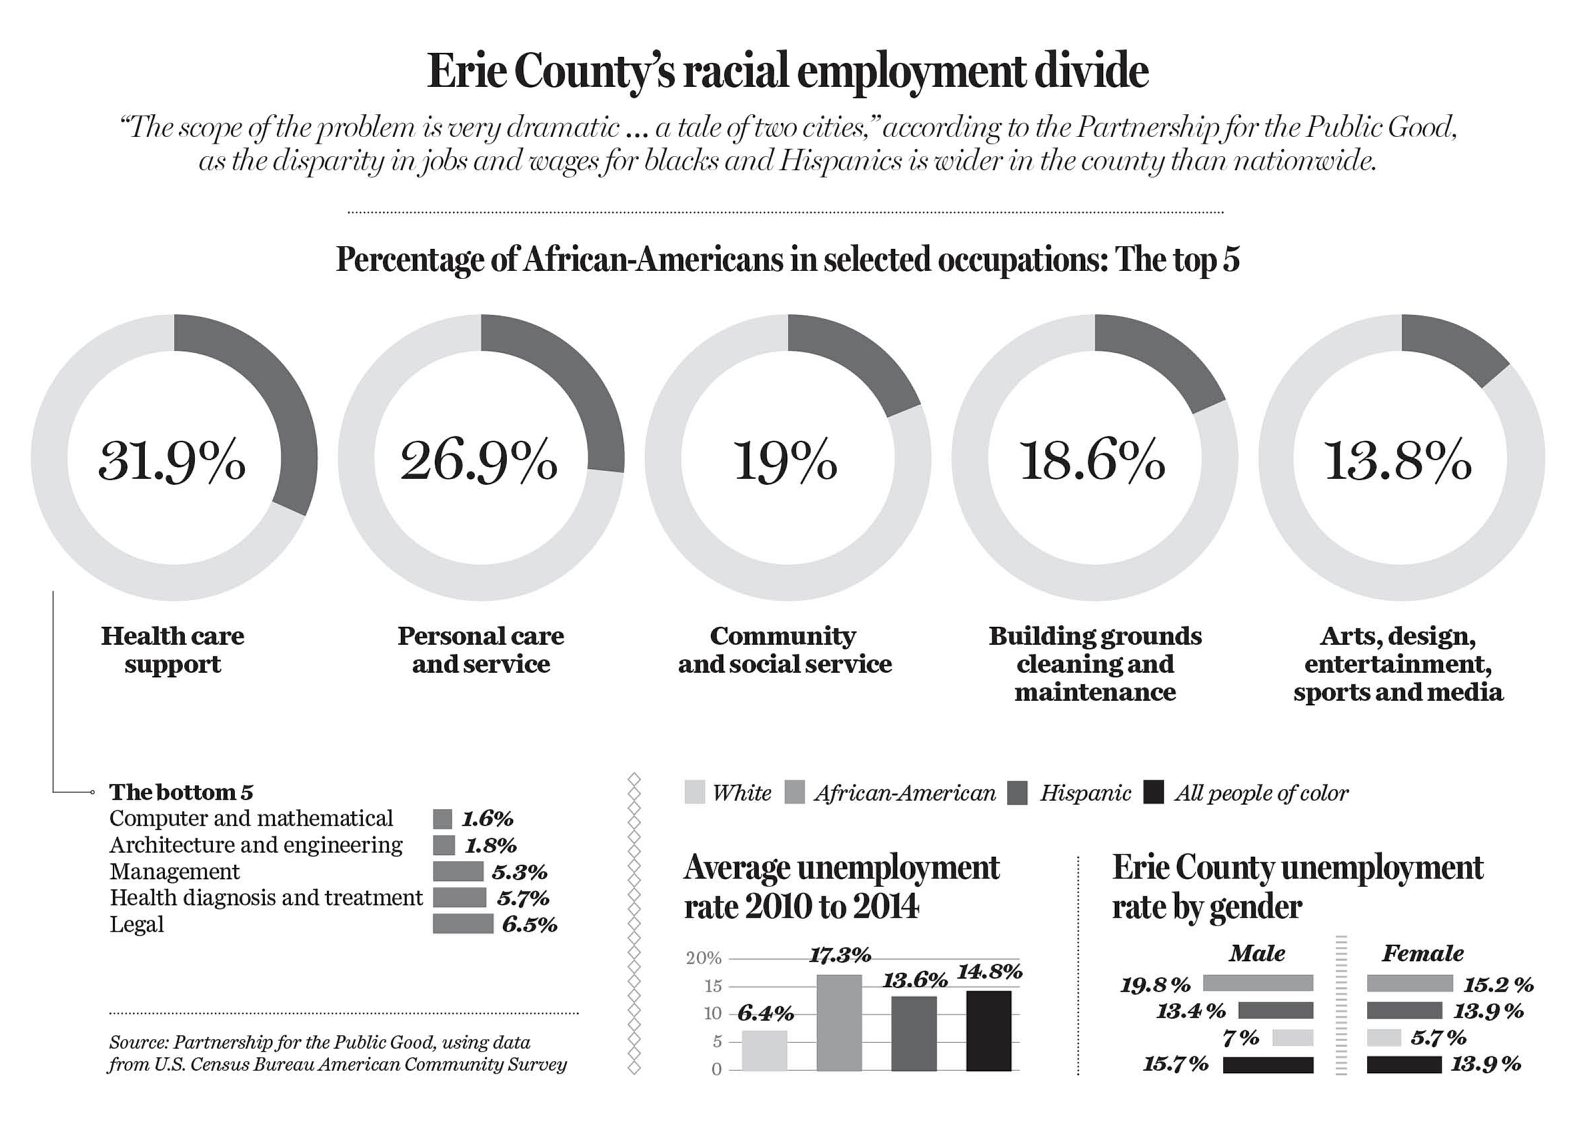 Graphic shows minority hiring and racial divide in Erie County